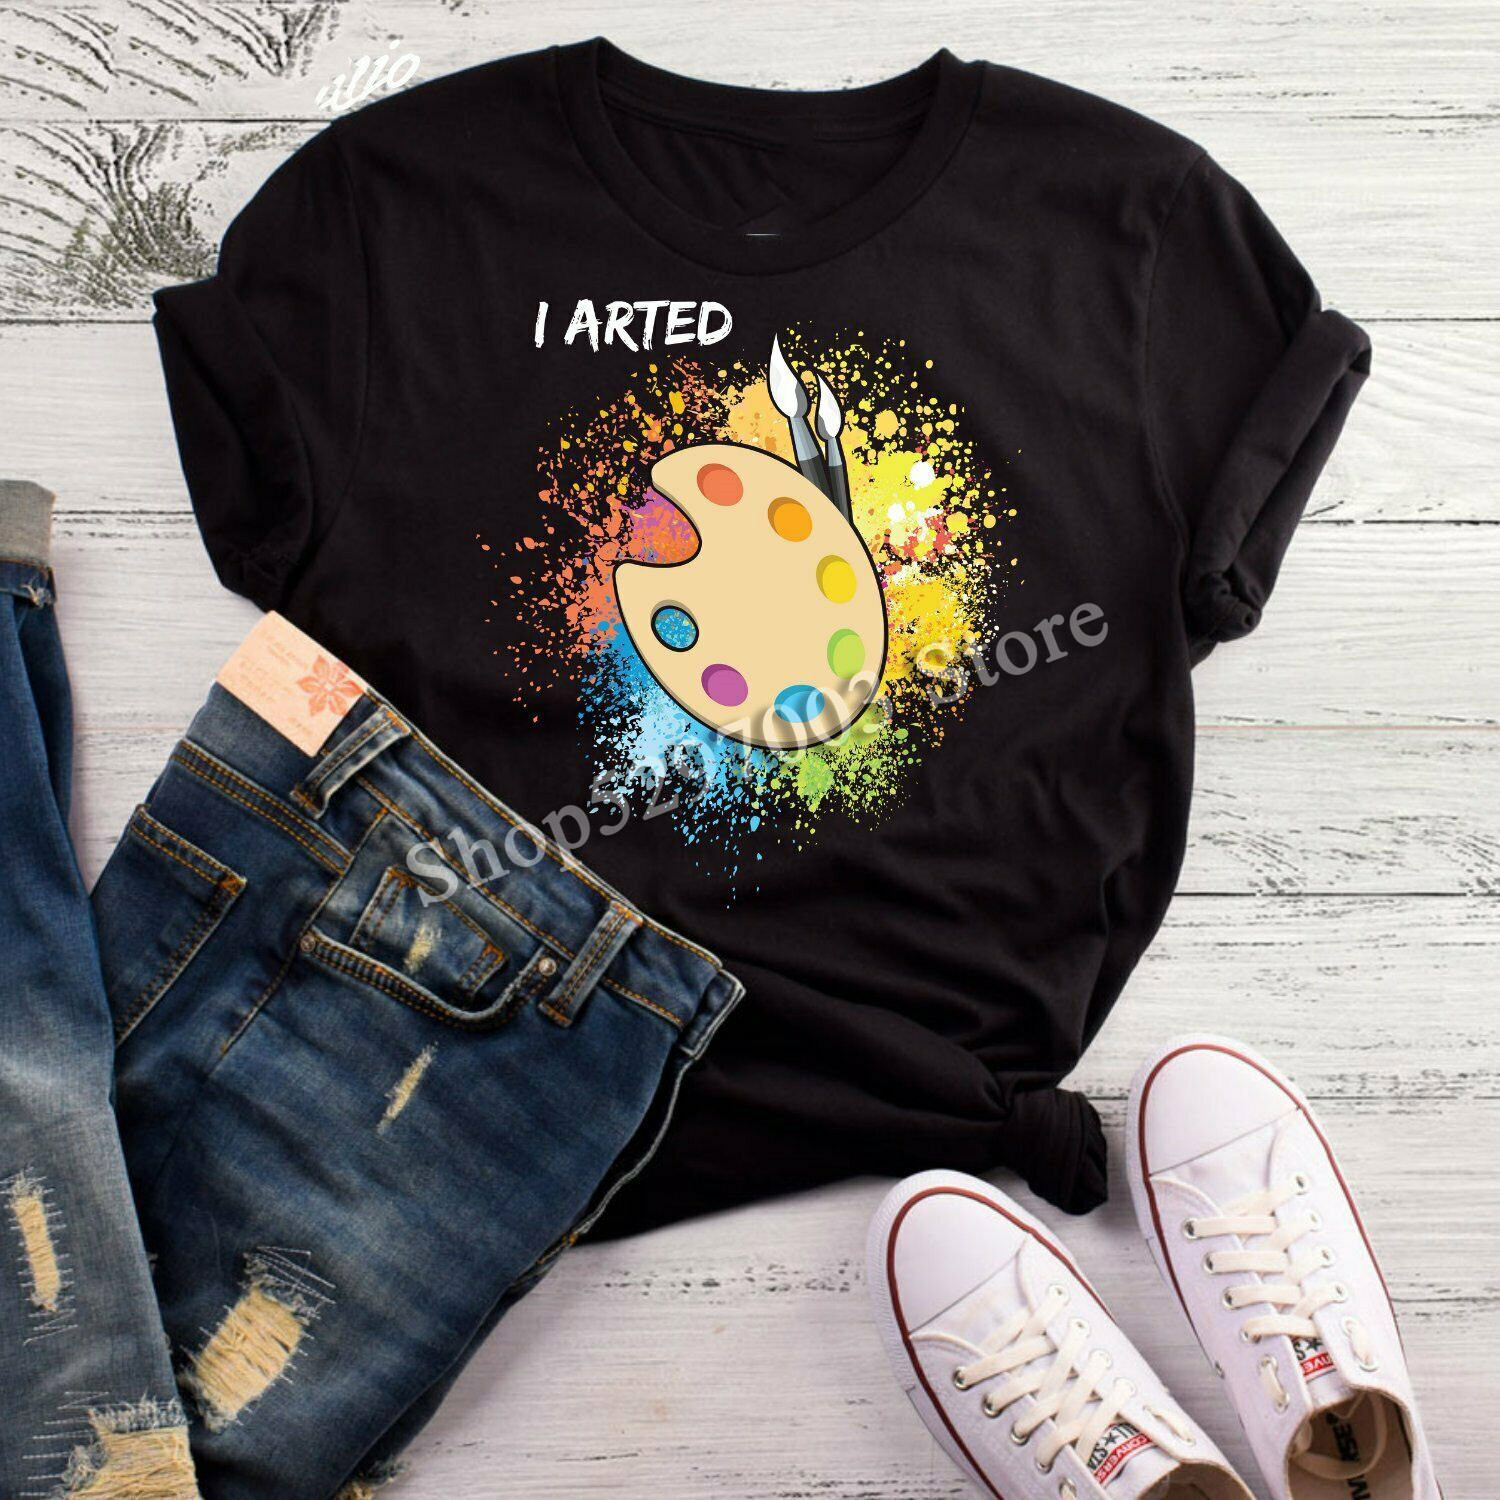 I Arted T-<font><b>Shirt</b></font>, Funny Art Teacher <font><b>Shirt</b></font>, Artist <font><b>Shirt</b></font>, Artist Gift, Gift For <font><b>Ar</b></font> Tee Tshirt Tee <font><b>Shirt</b></font> image